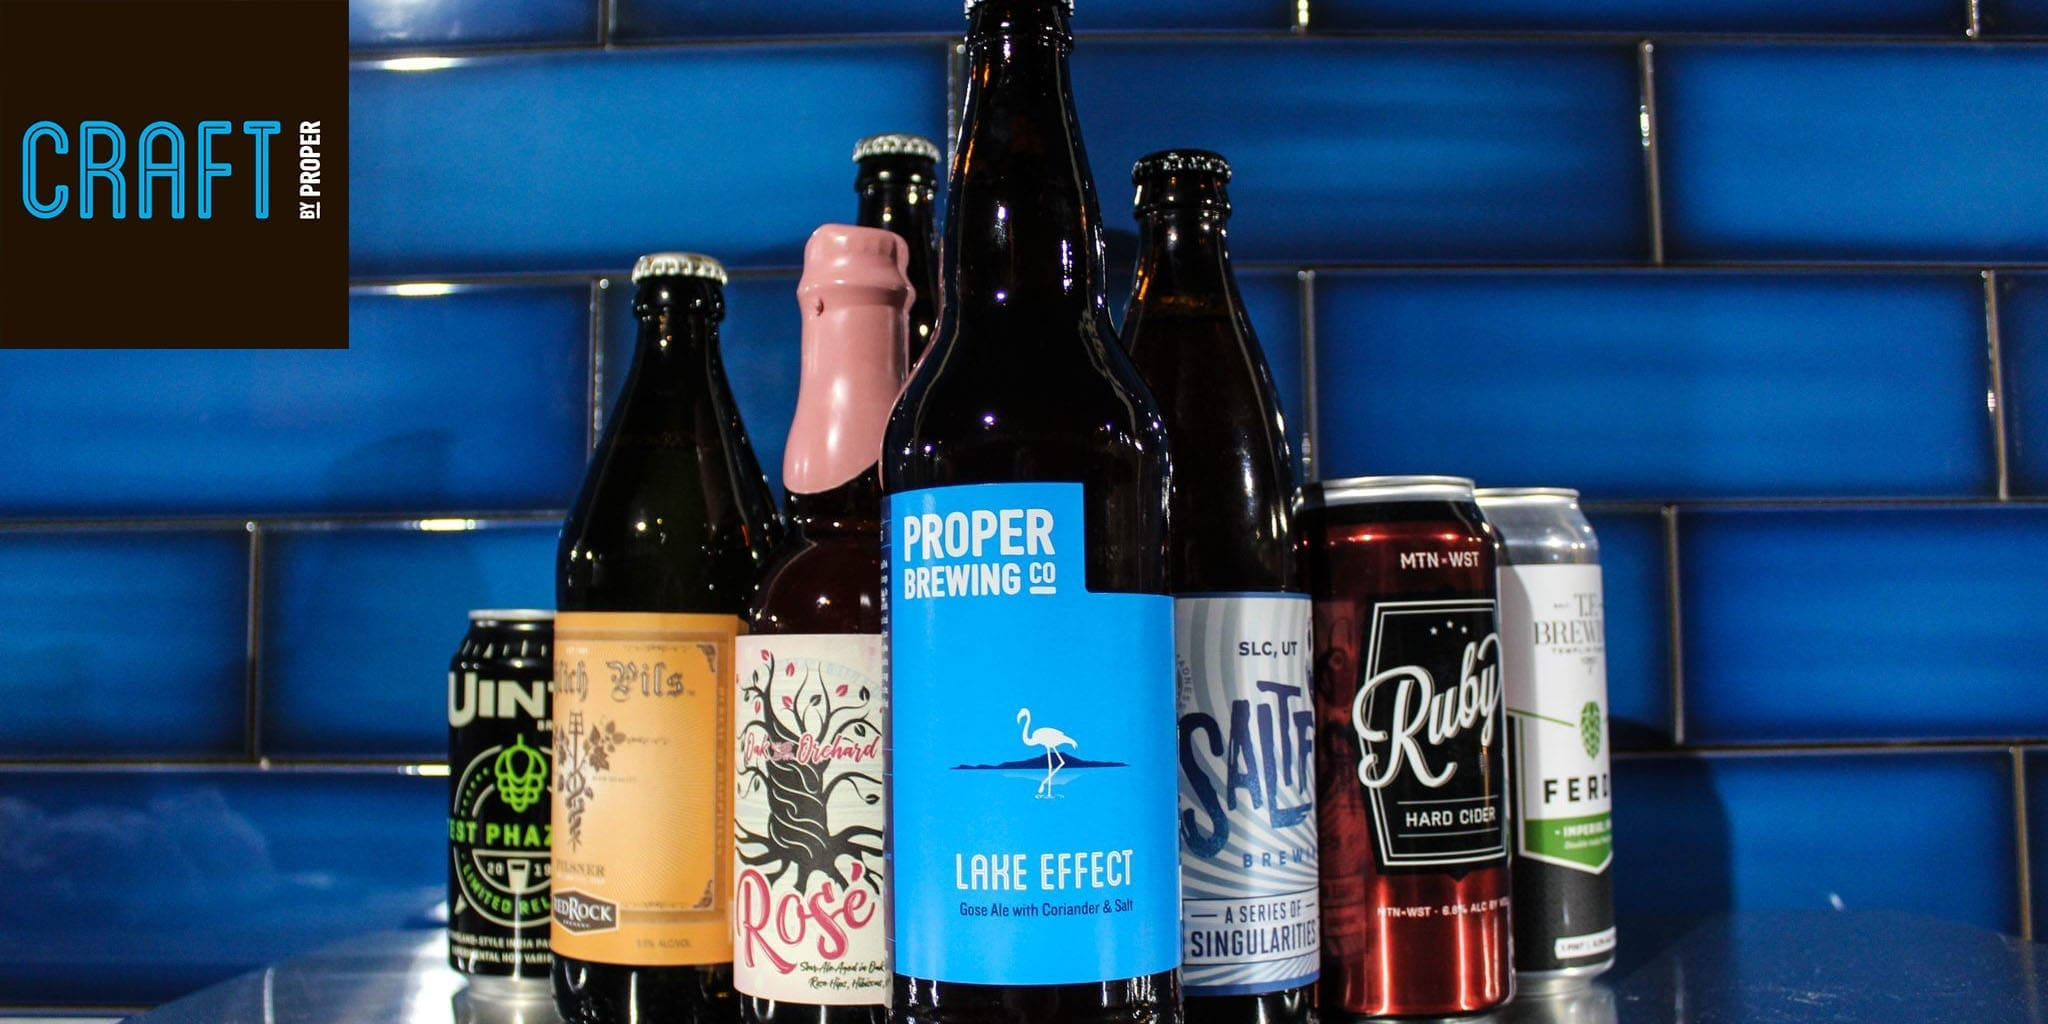 Craft by Proper - Utah's Only Utah-Only Beer Bar